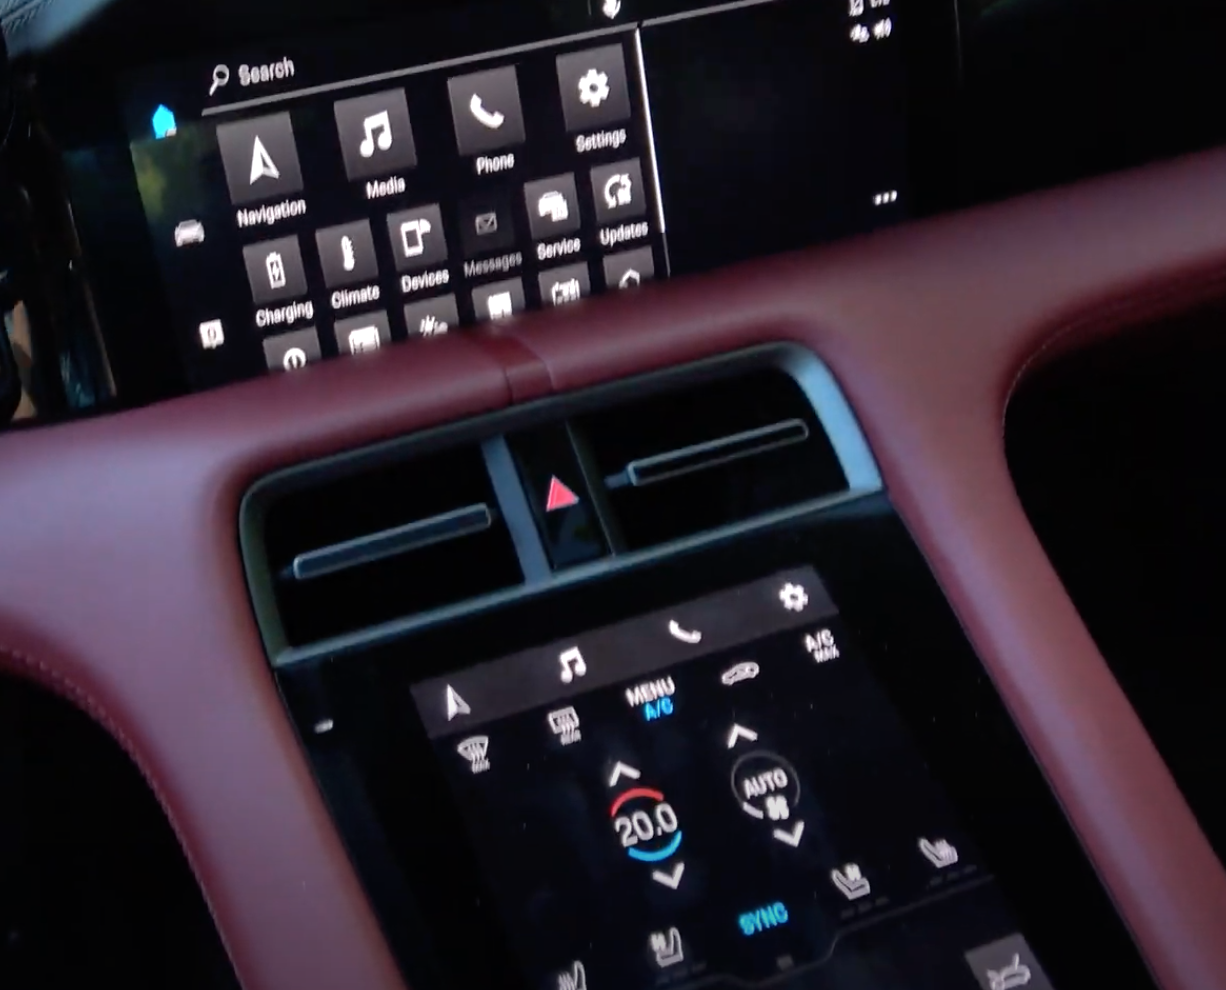 An image of the touch surfaces in a car